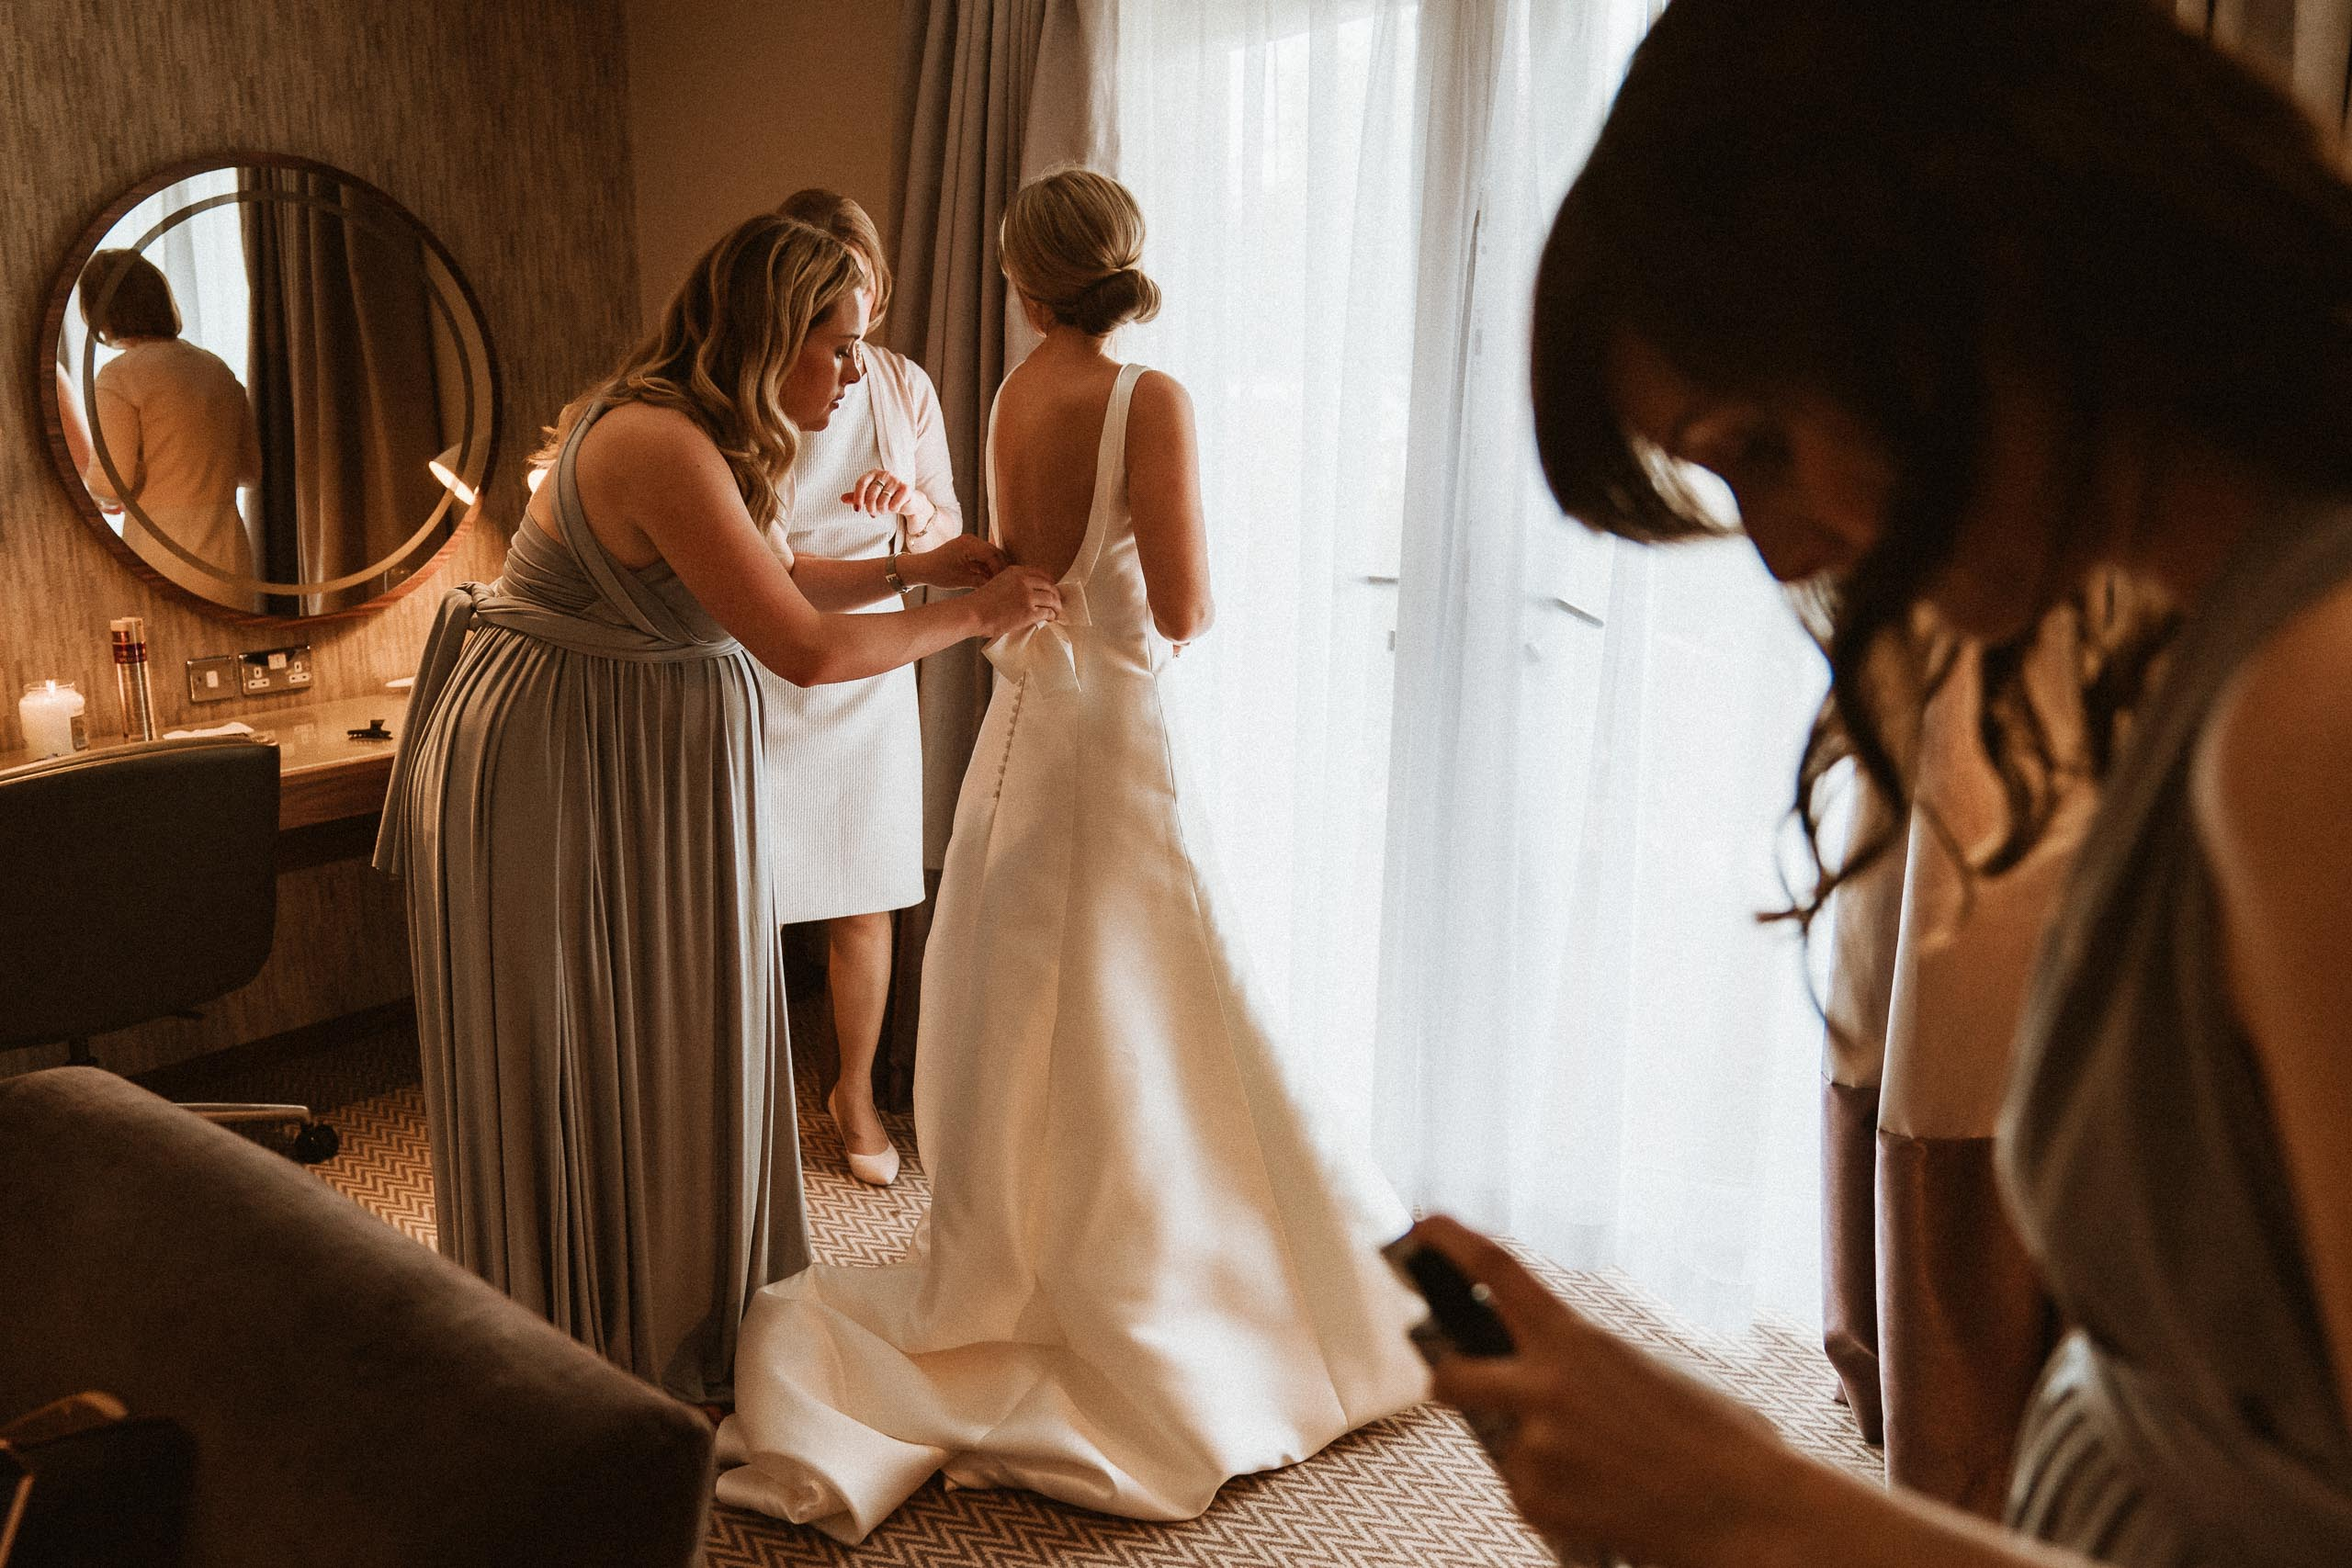 bride getting into wedding dress with bridesmaids helping